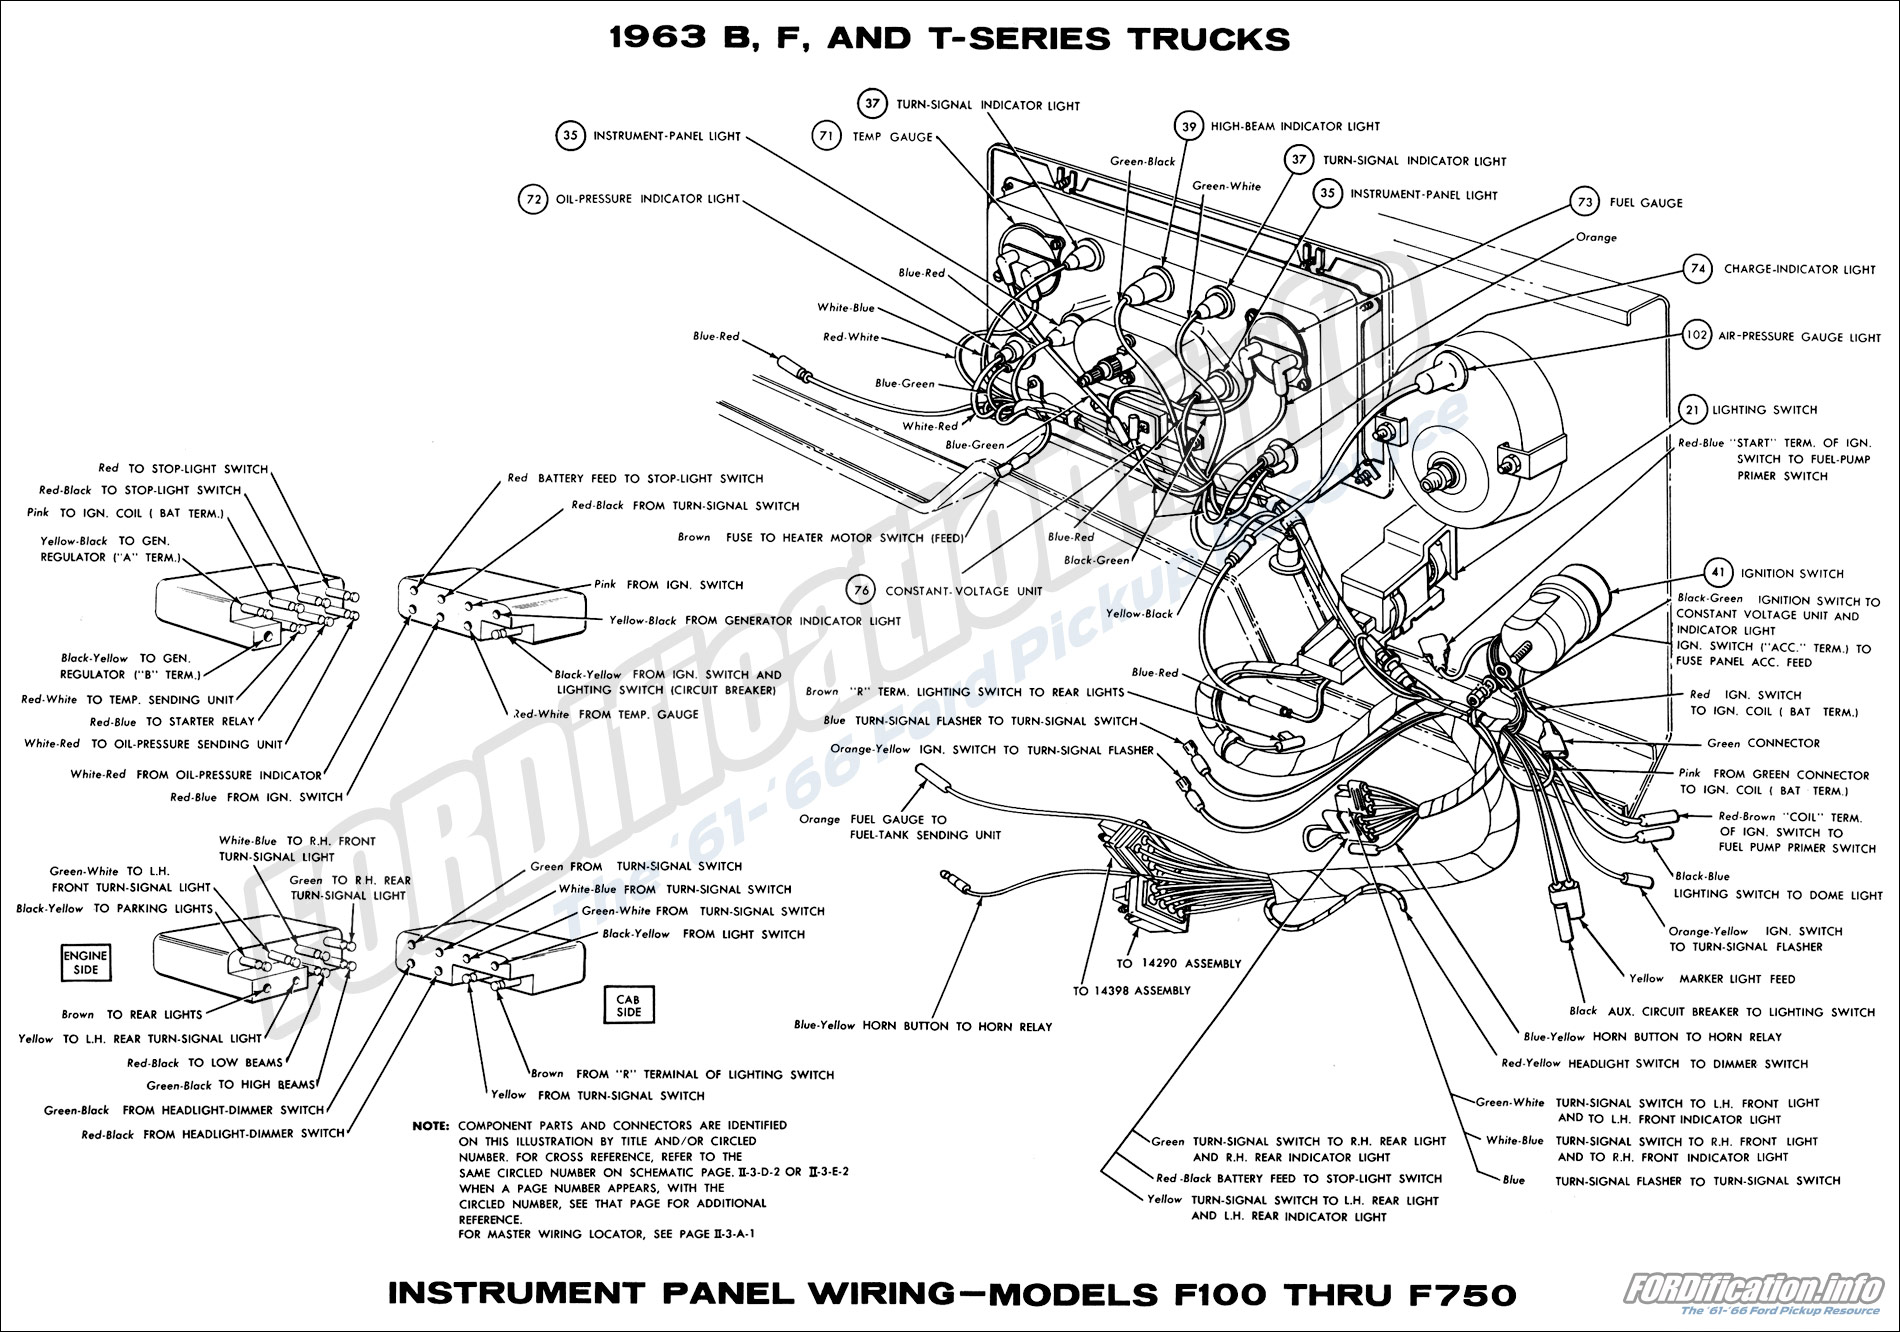 1961 1963 Ford F 100 Wiring Diagram. Ford. Wiring Diagram